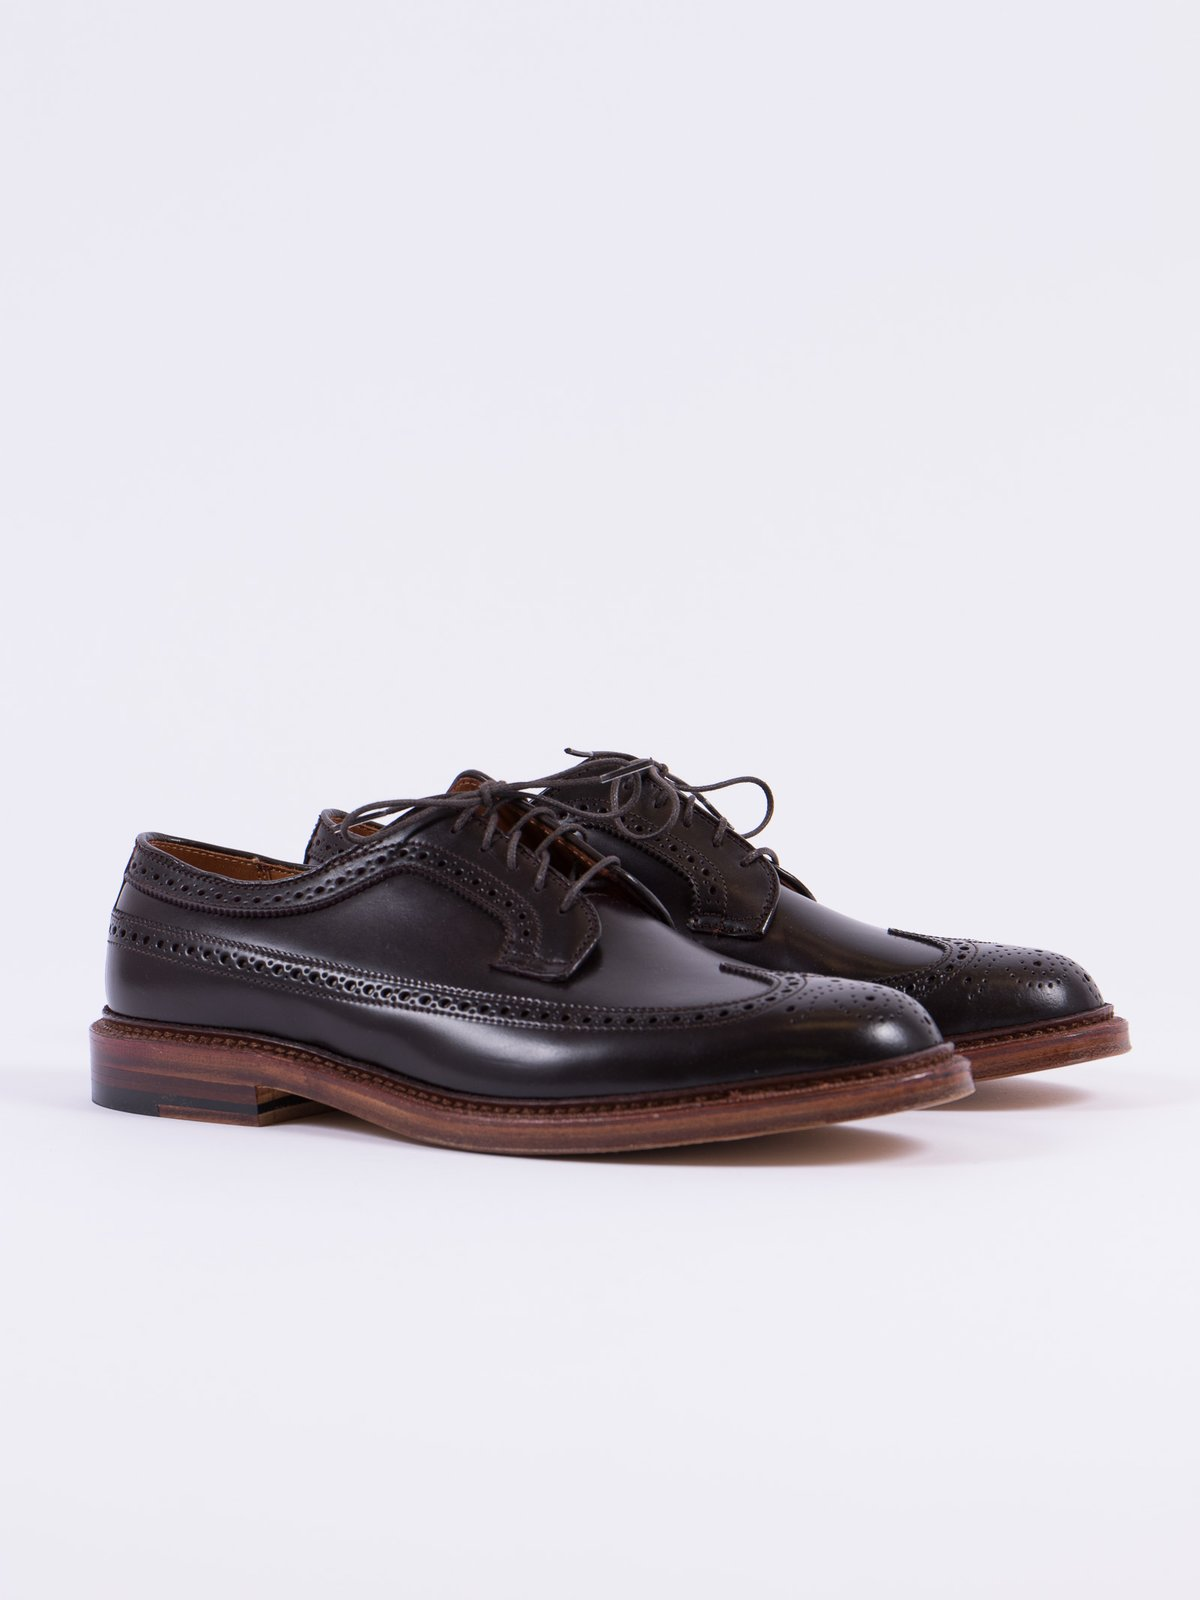 Color 8 Cordovan Long Wing Blucher - Image 1